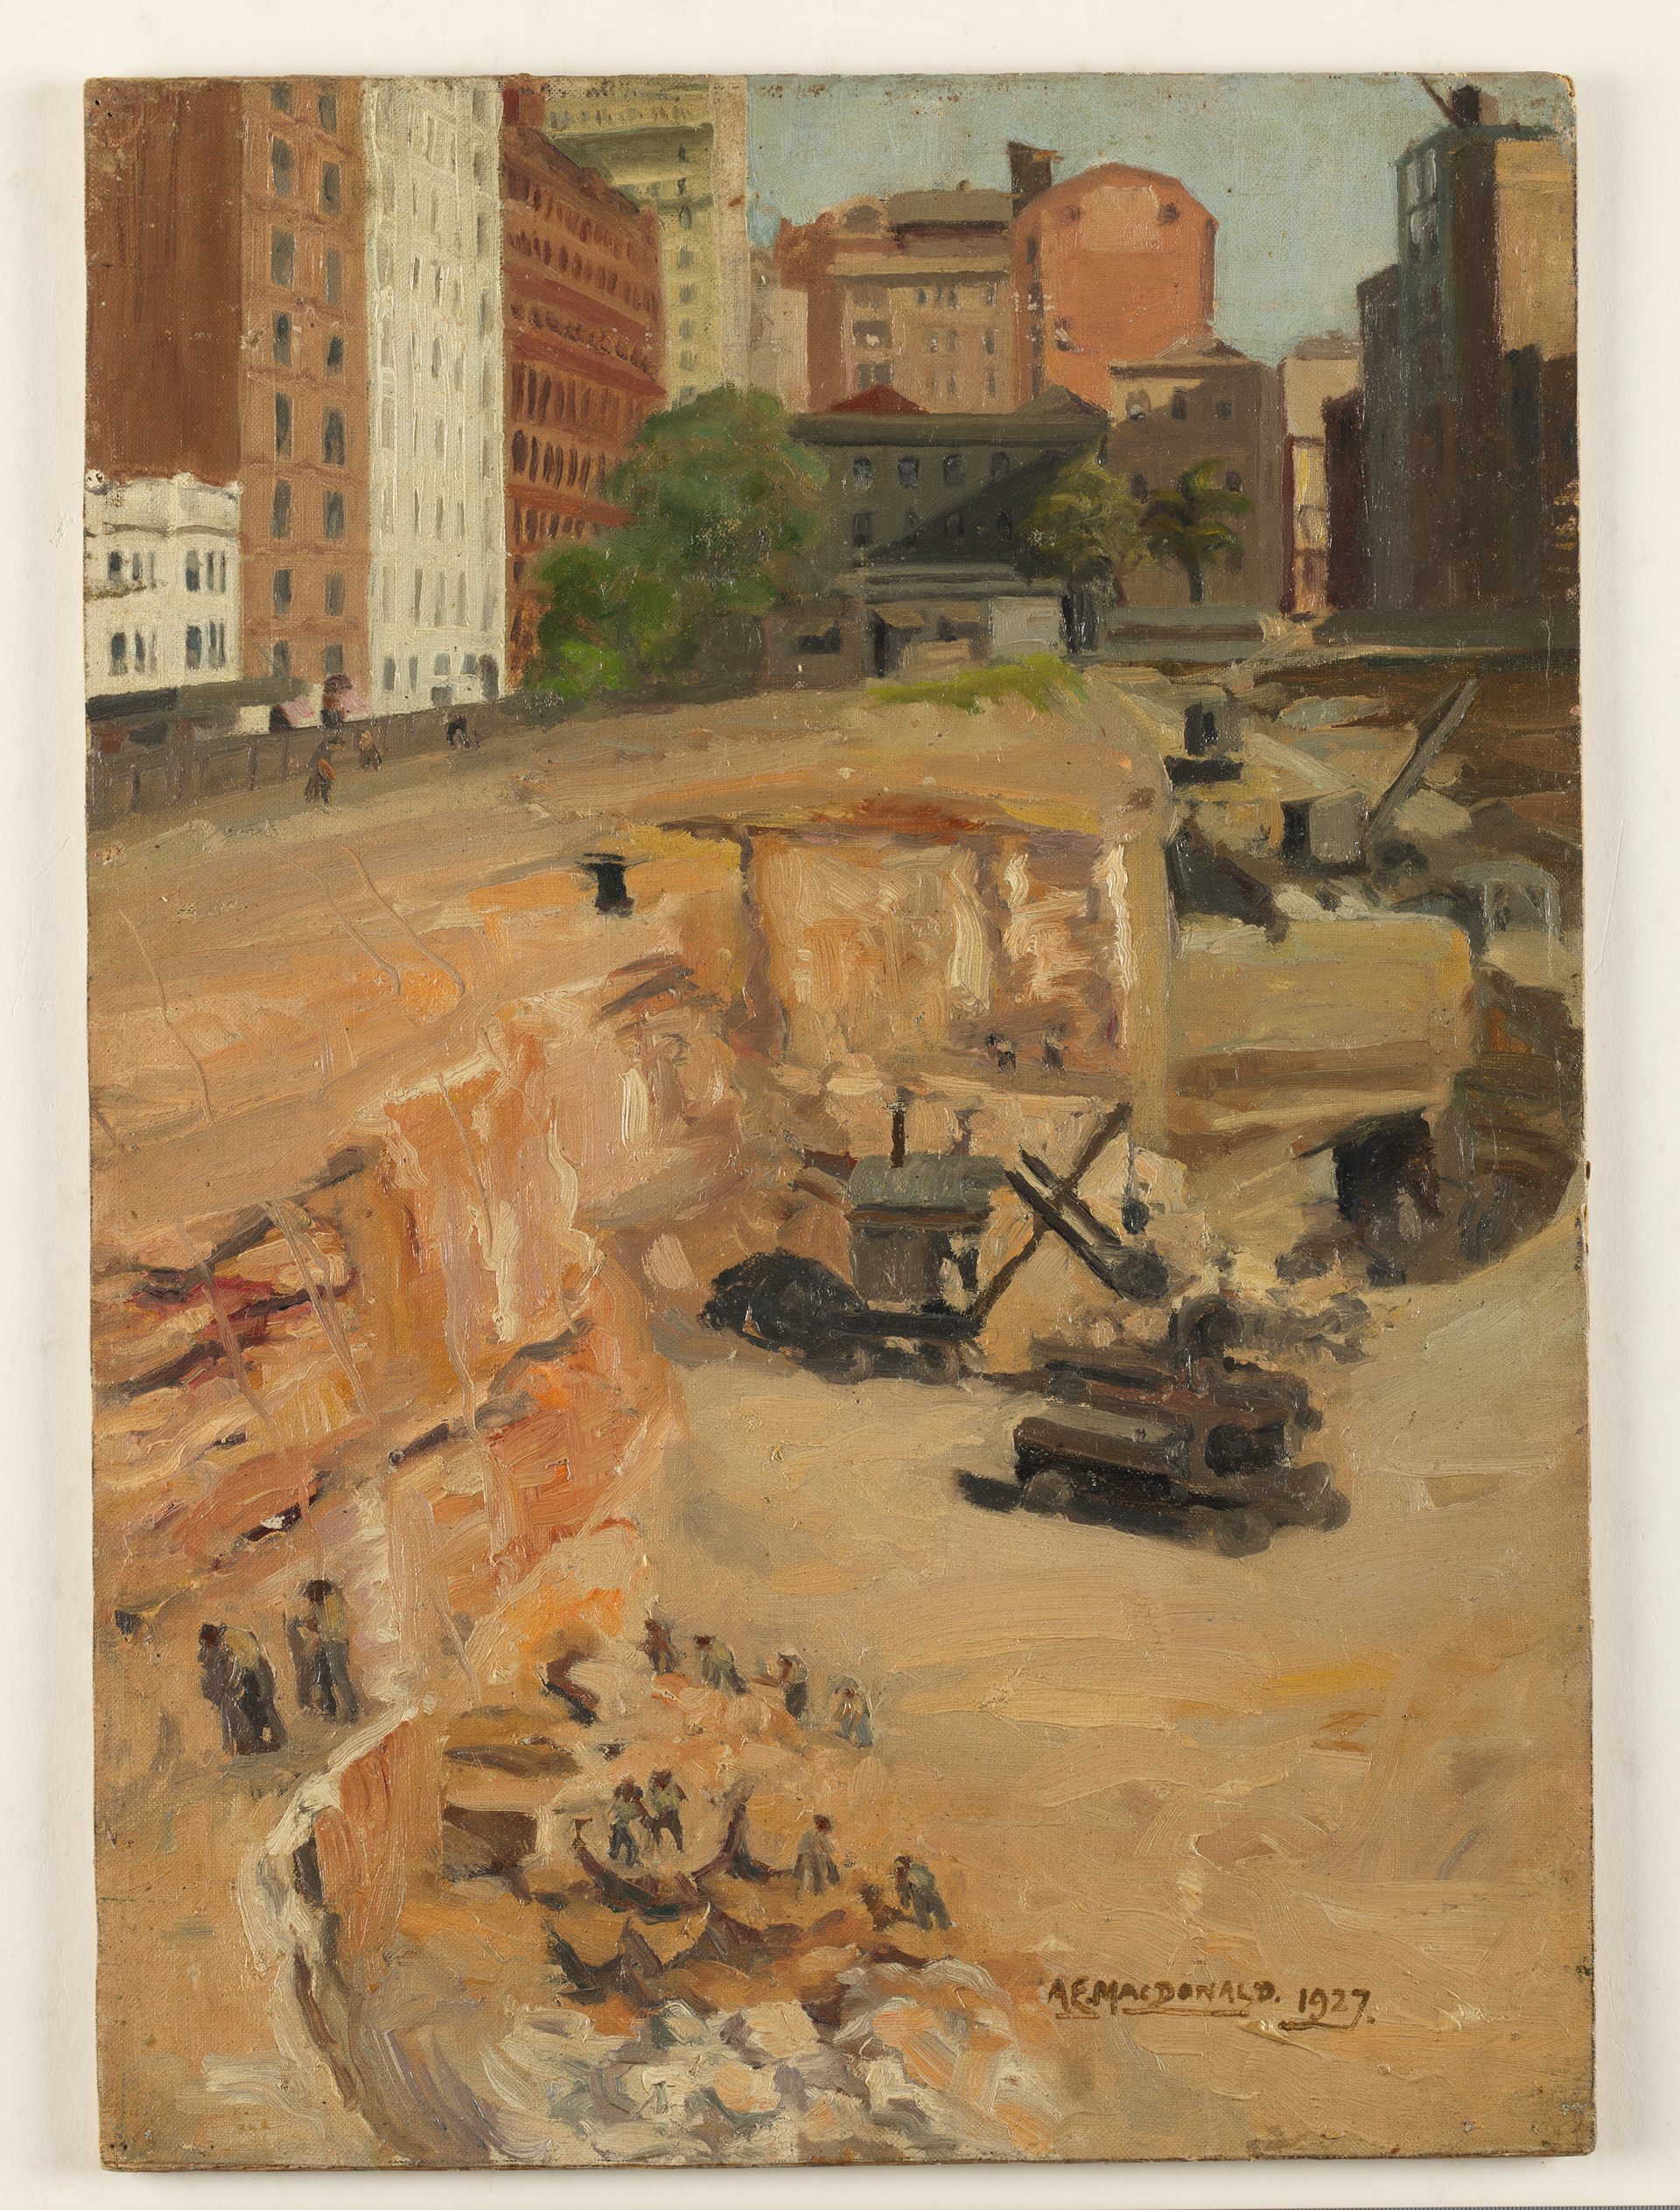 Wynyard Park during excavations for Wynyard Station 1927 / A.E. Macdonald